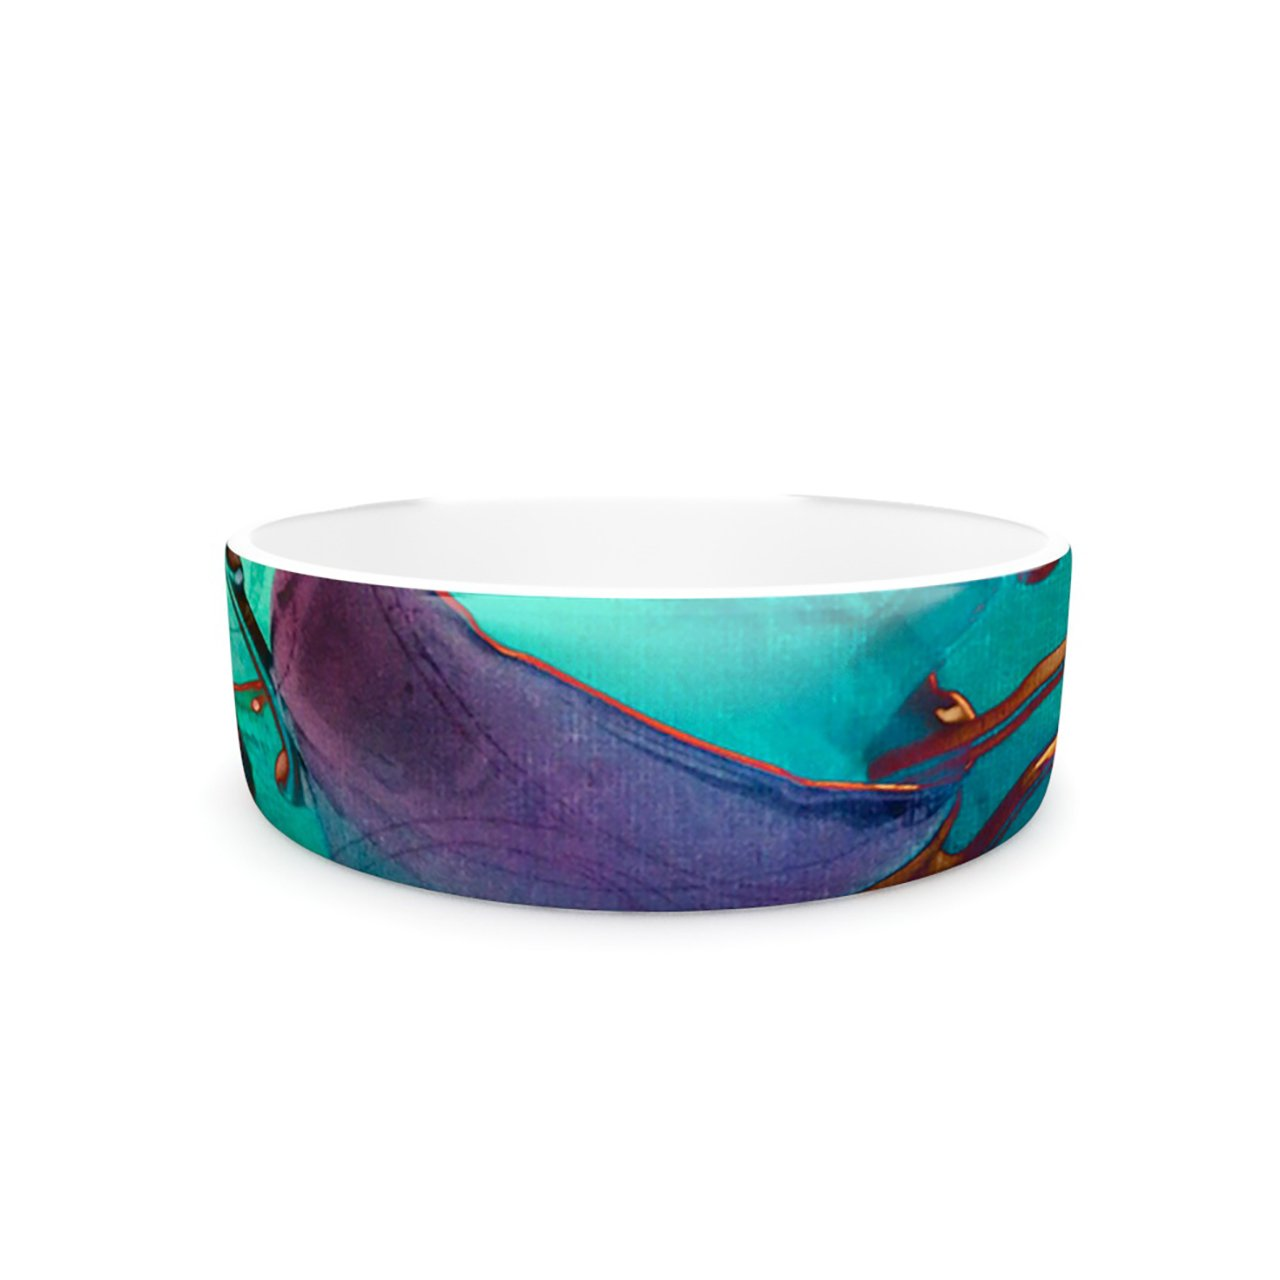 Kess InHouse alyZen Moonshadow Mad Hatters T-Party I  Pet Bowl, 7-Inch, Turquoise